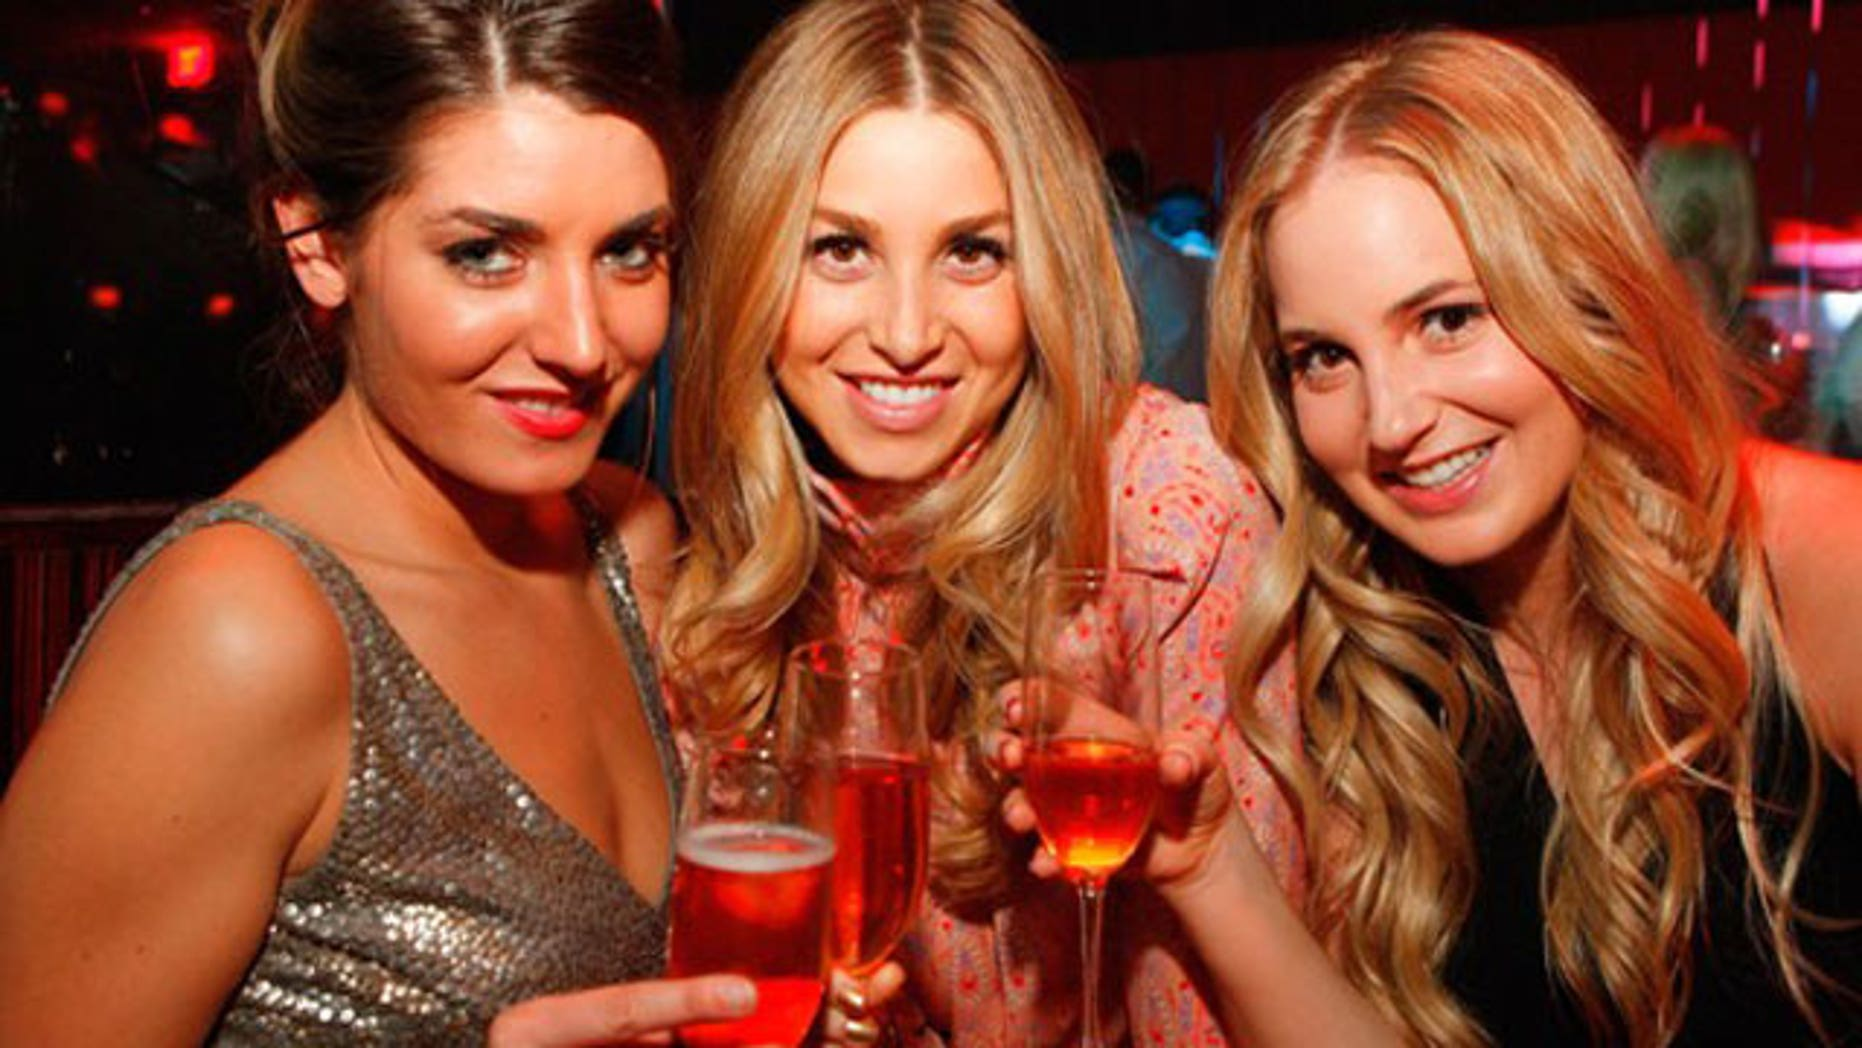 Whitney Port and good friends, including co-star Samantha Swetra, hosting Friday night at JET NIGHTCLUB at The Mirage where they mixed and mingled with partygoers and danced into the wee hours of the morning.